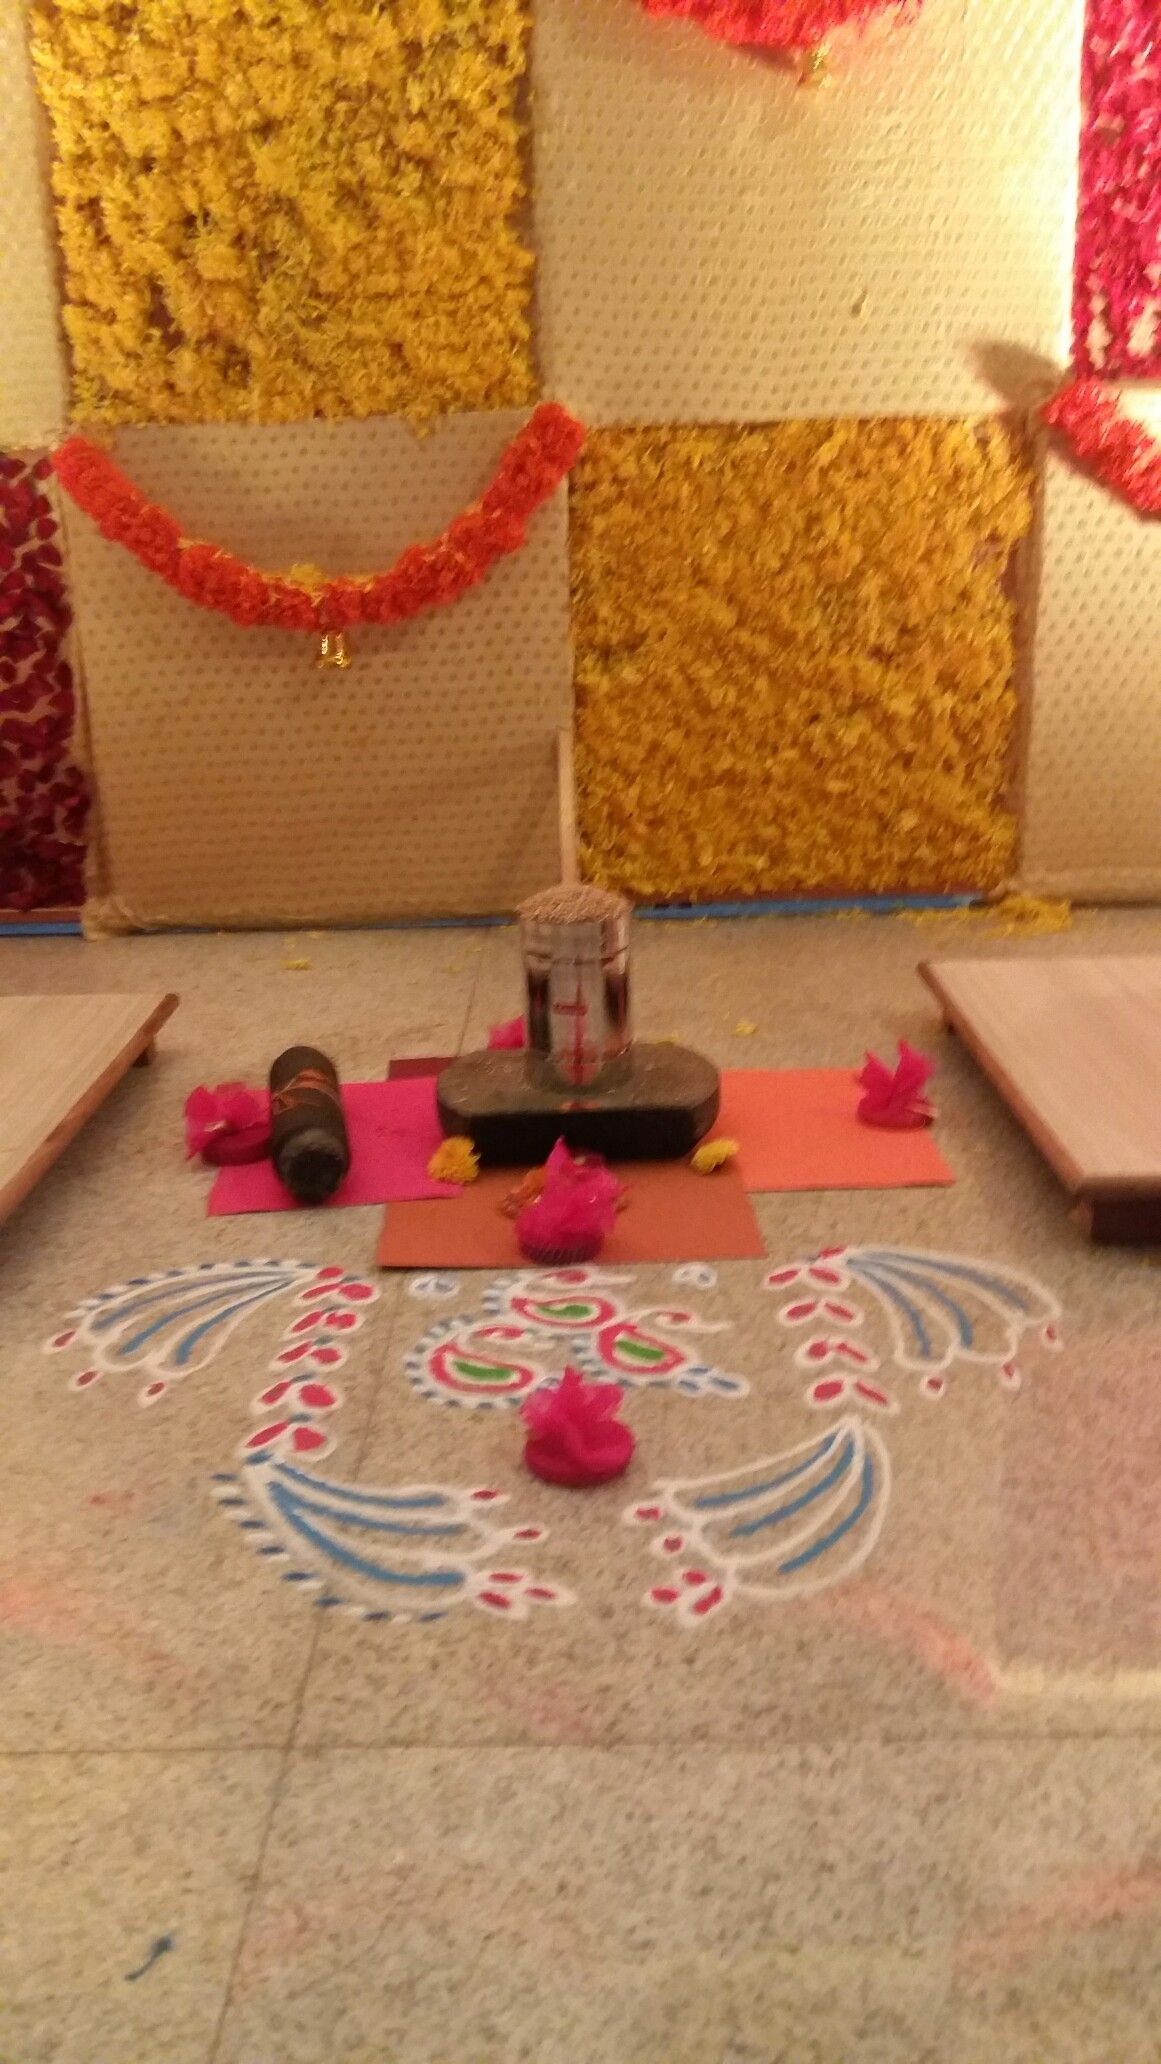 Wedding room decoration ideas  Pin by Anitha Suresh on decorations  Pinterest  Decoration